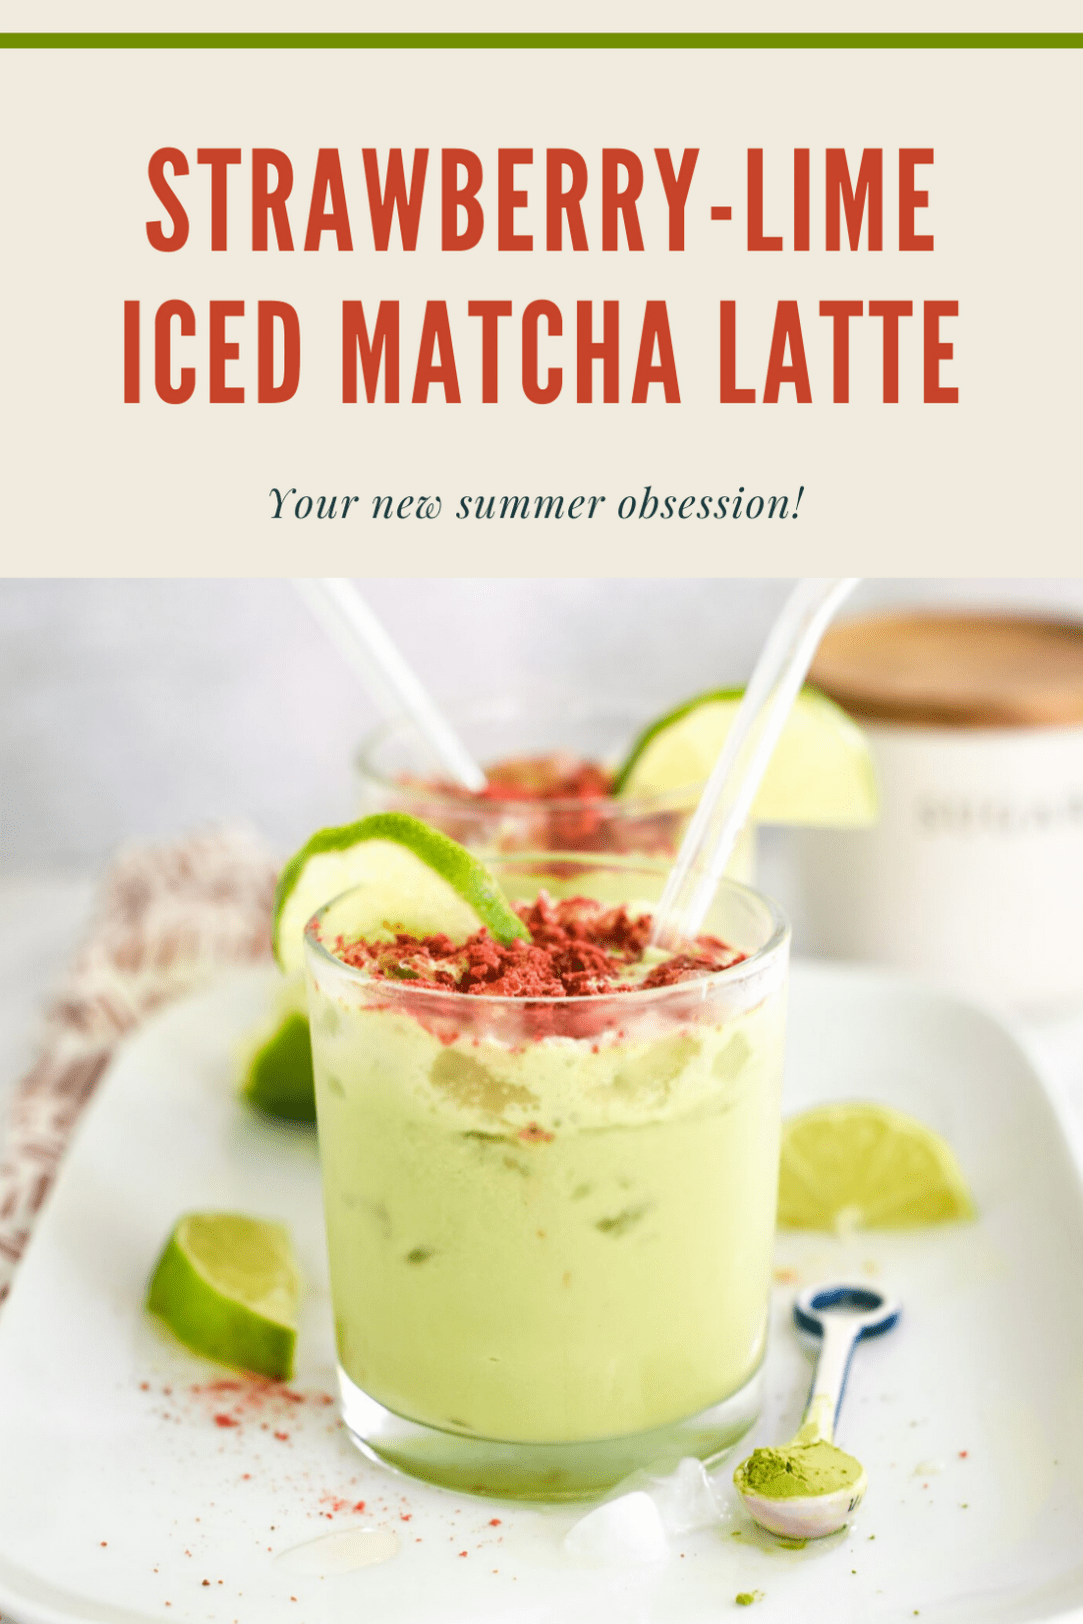 Iced Chai Latte when crushed freeze-dried strawberries on top